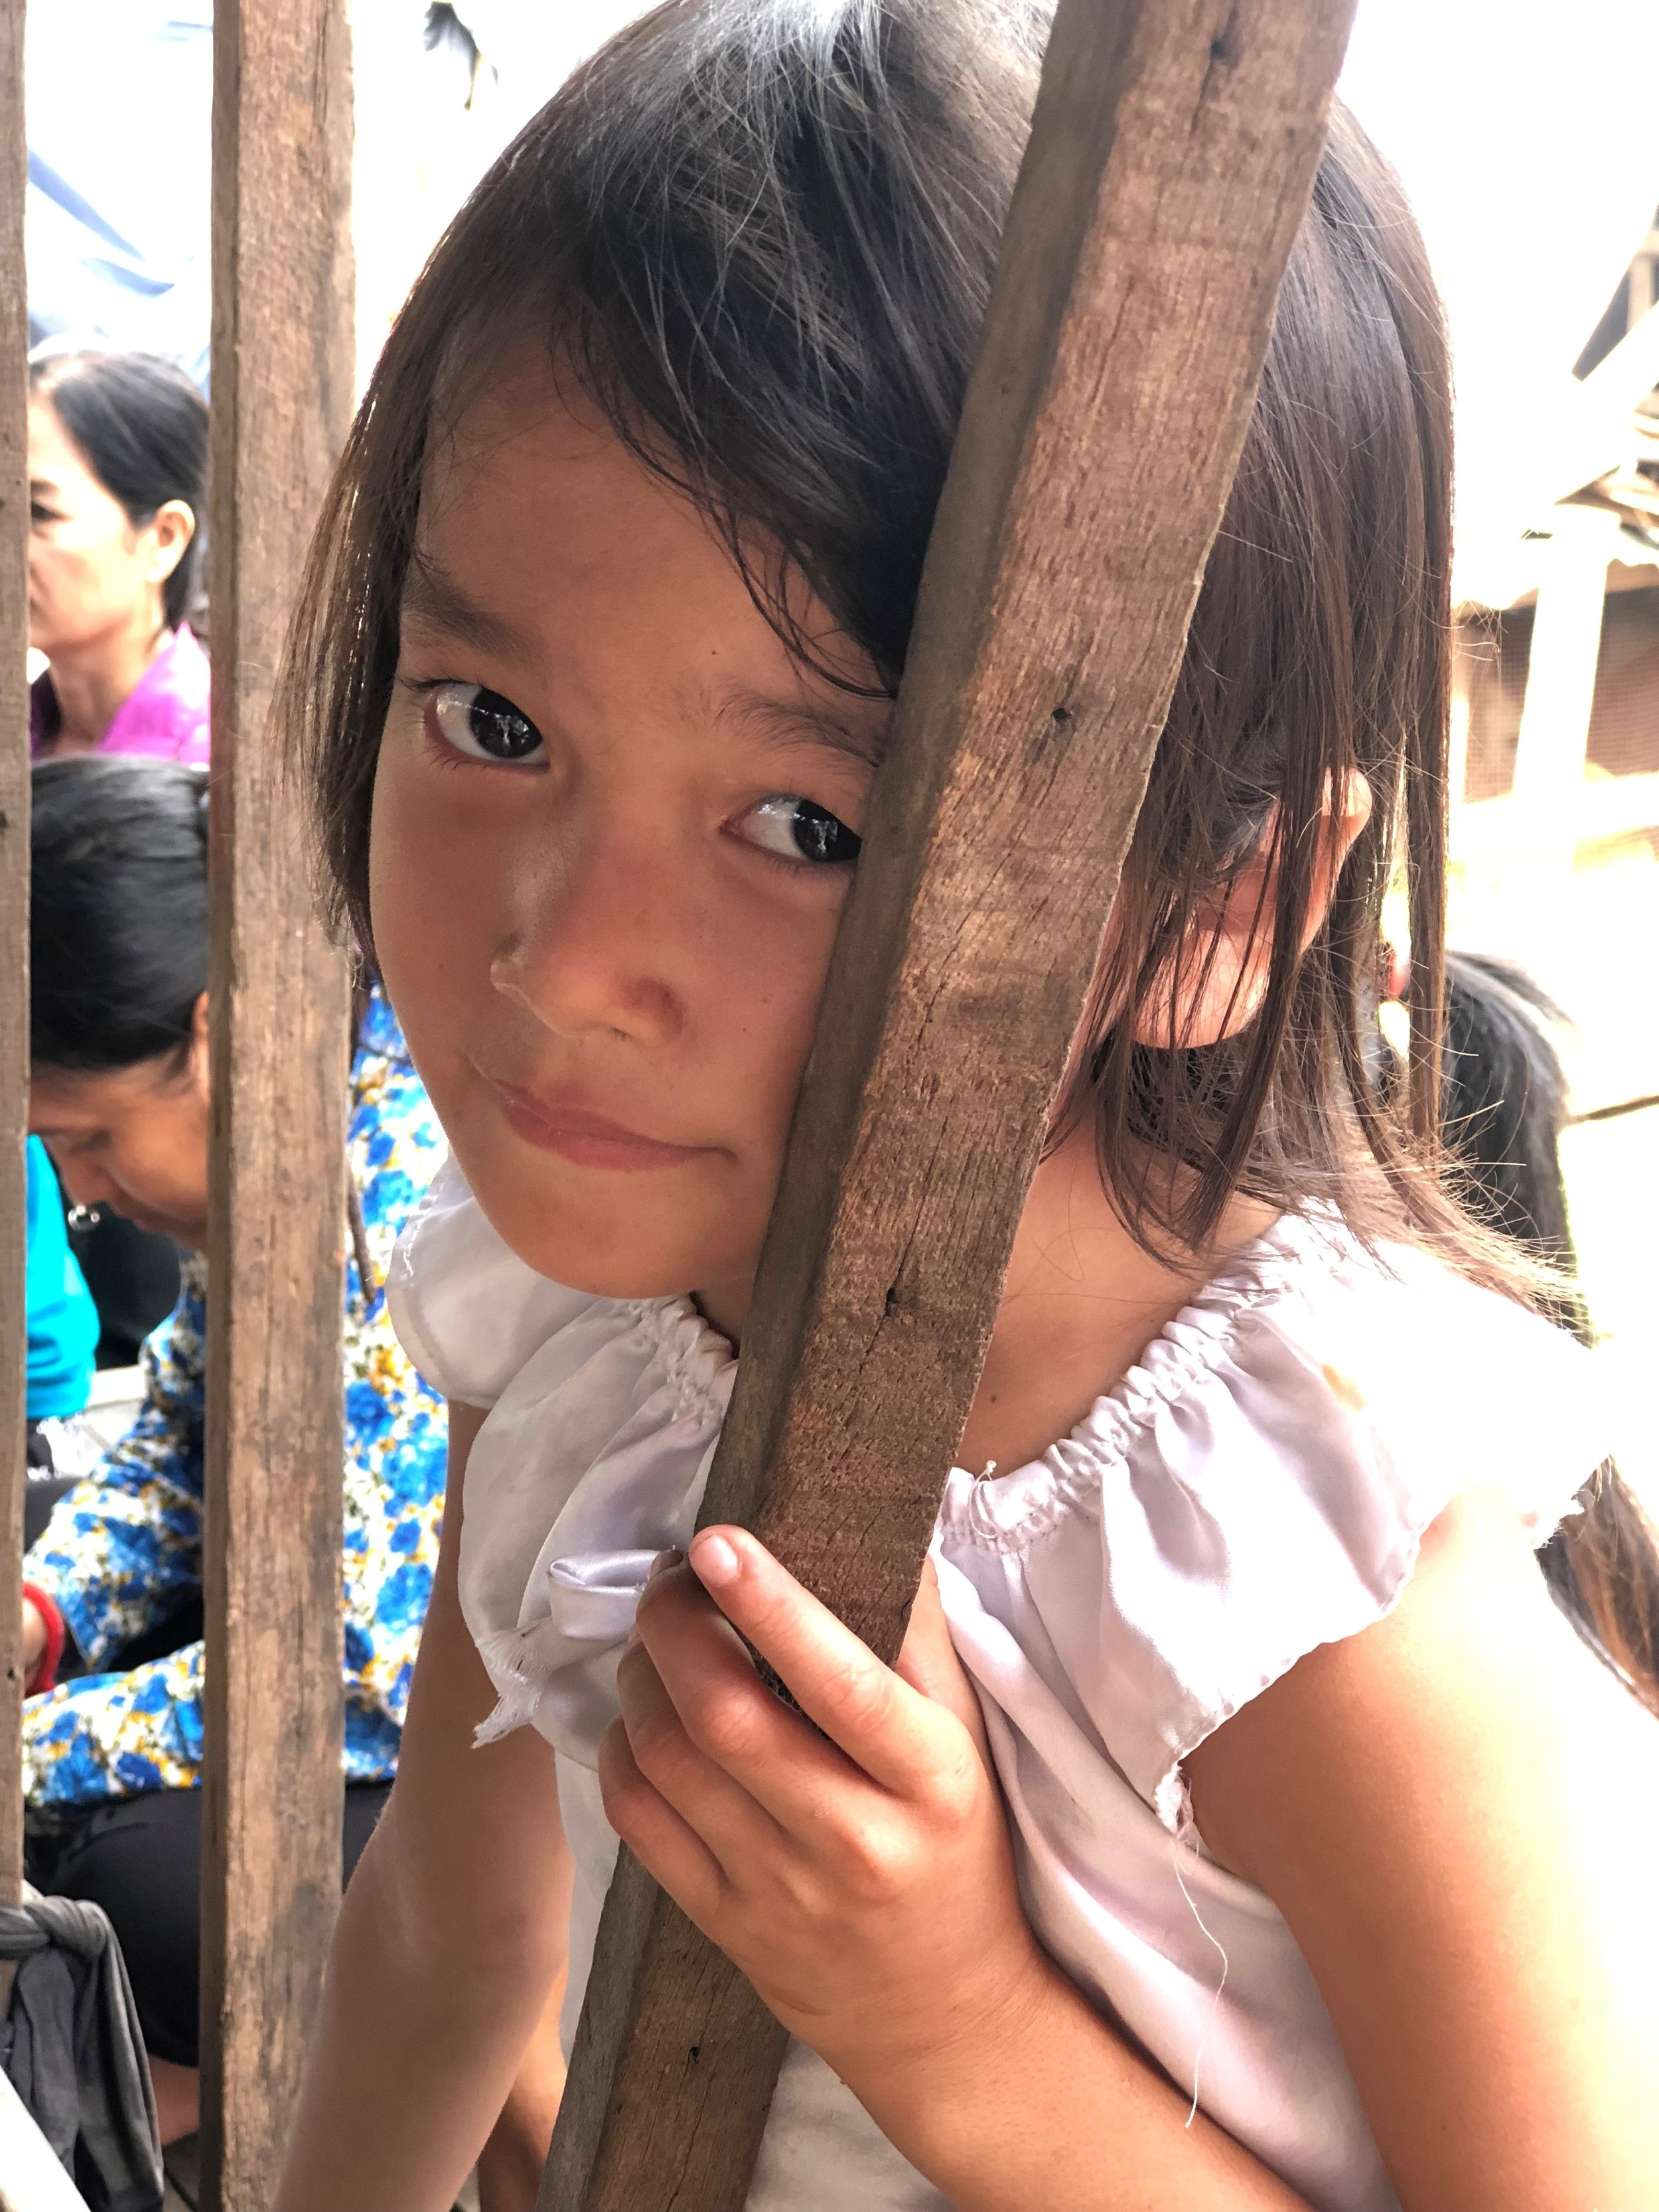 This little girl was born in the brothel. She does not know her father, a client, and will likely live the same fate as her mother. One day soon, sold for her virginity and trafficked.